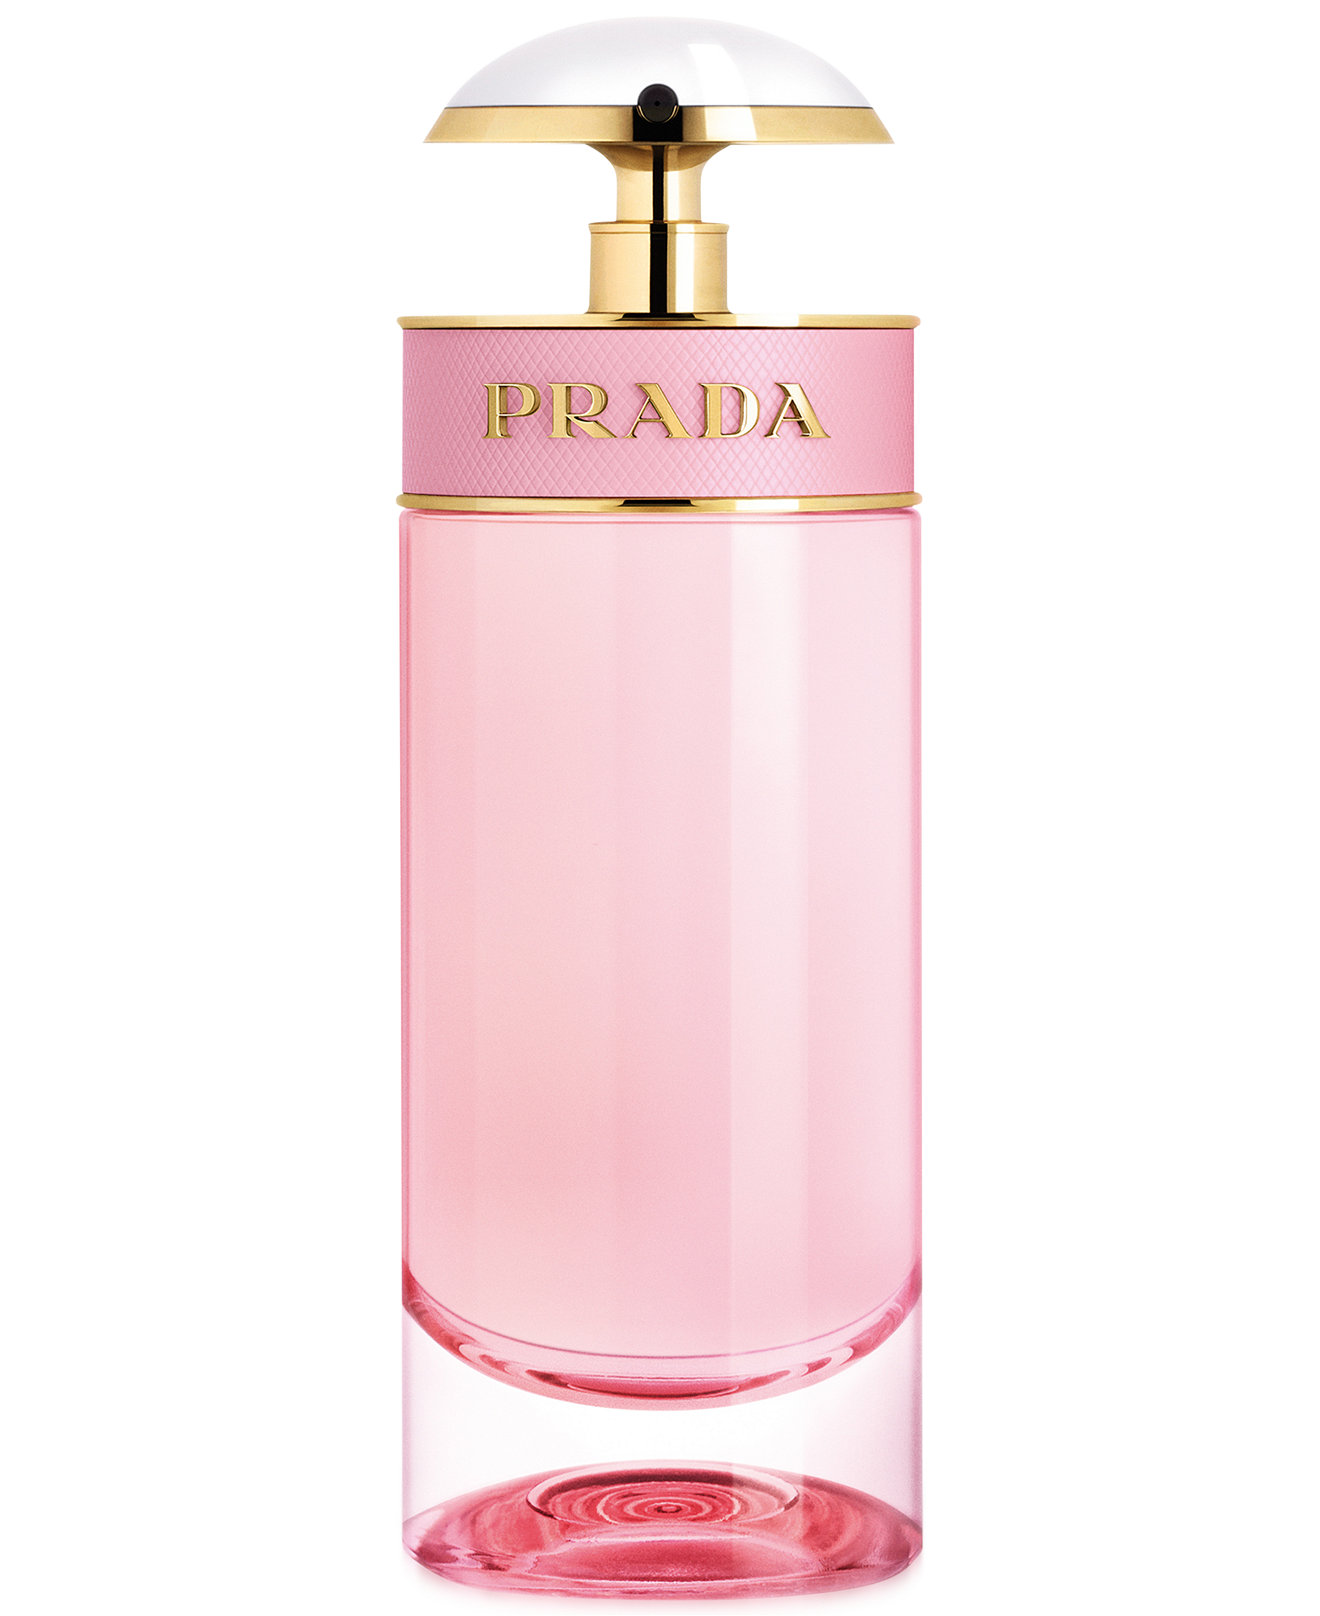 discount prada handbags - Beauty - Prada Candy | Macy's